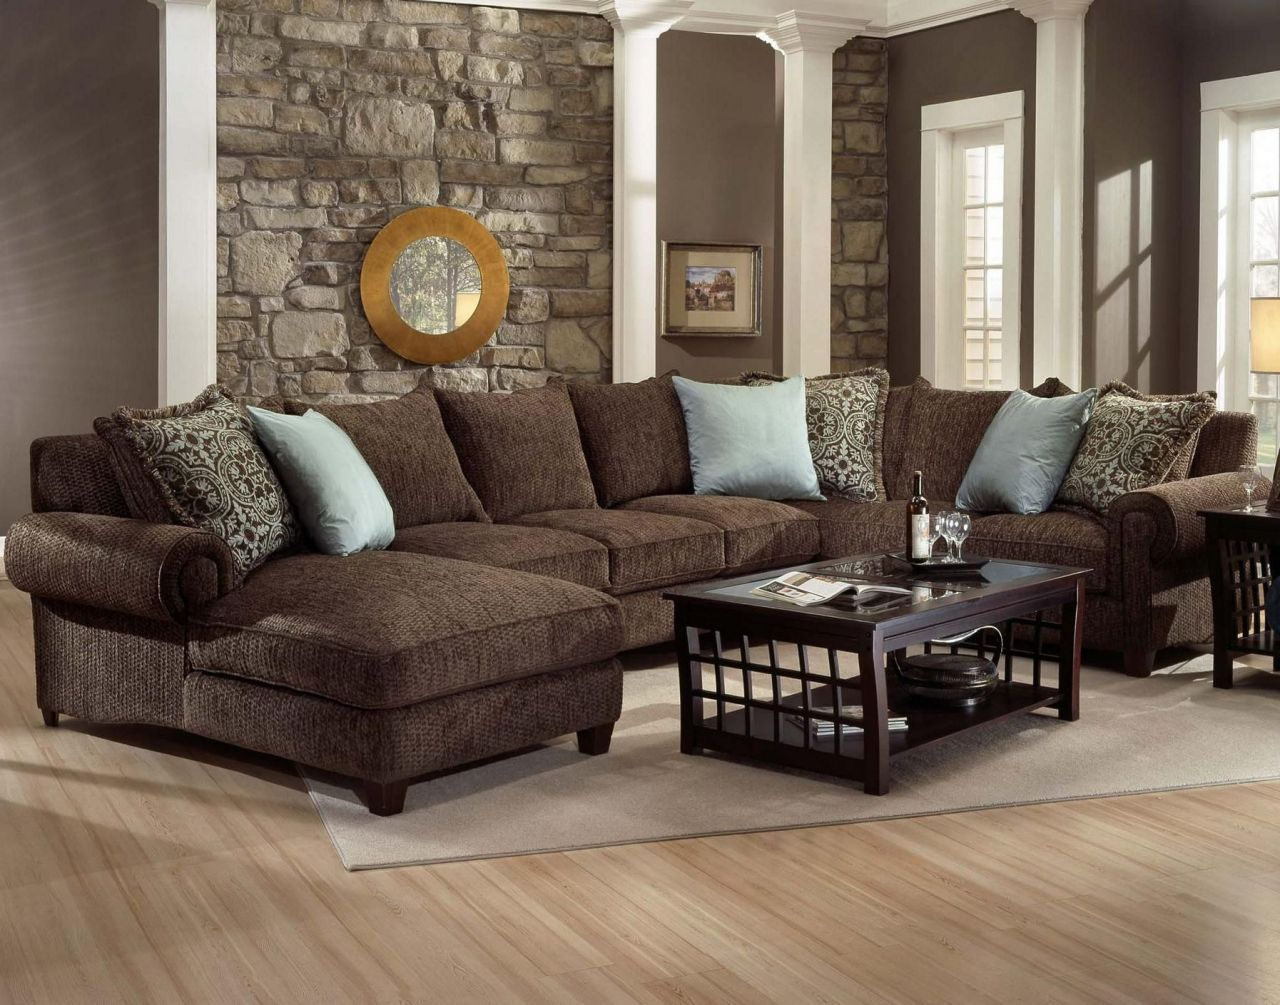 Brown Couch What Color Walls Living Room Colors With Brown Couch Ideas 31 In 2019 Decorating